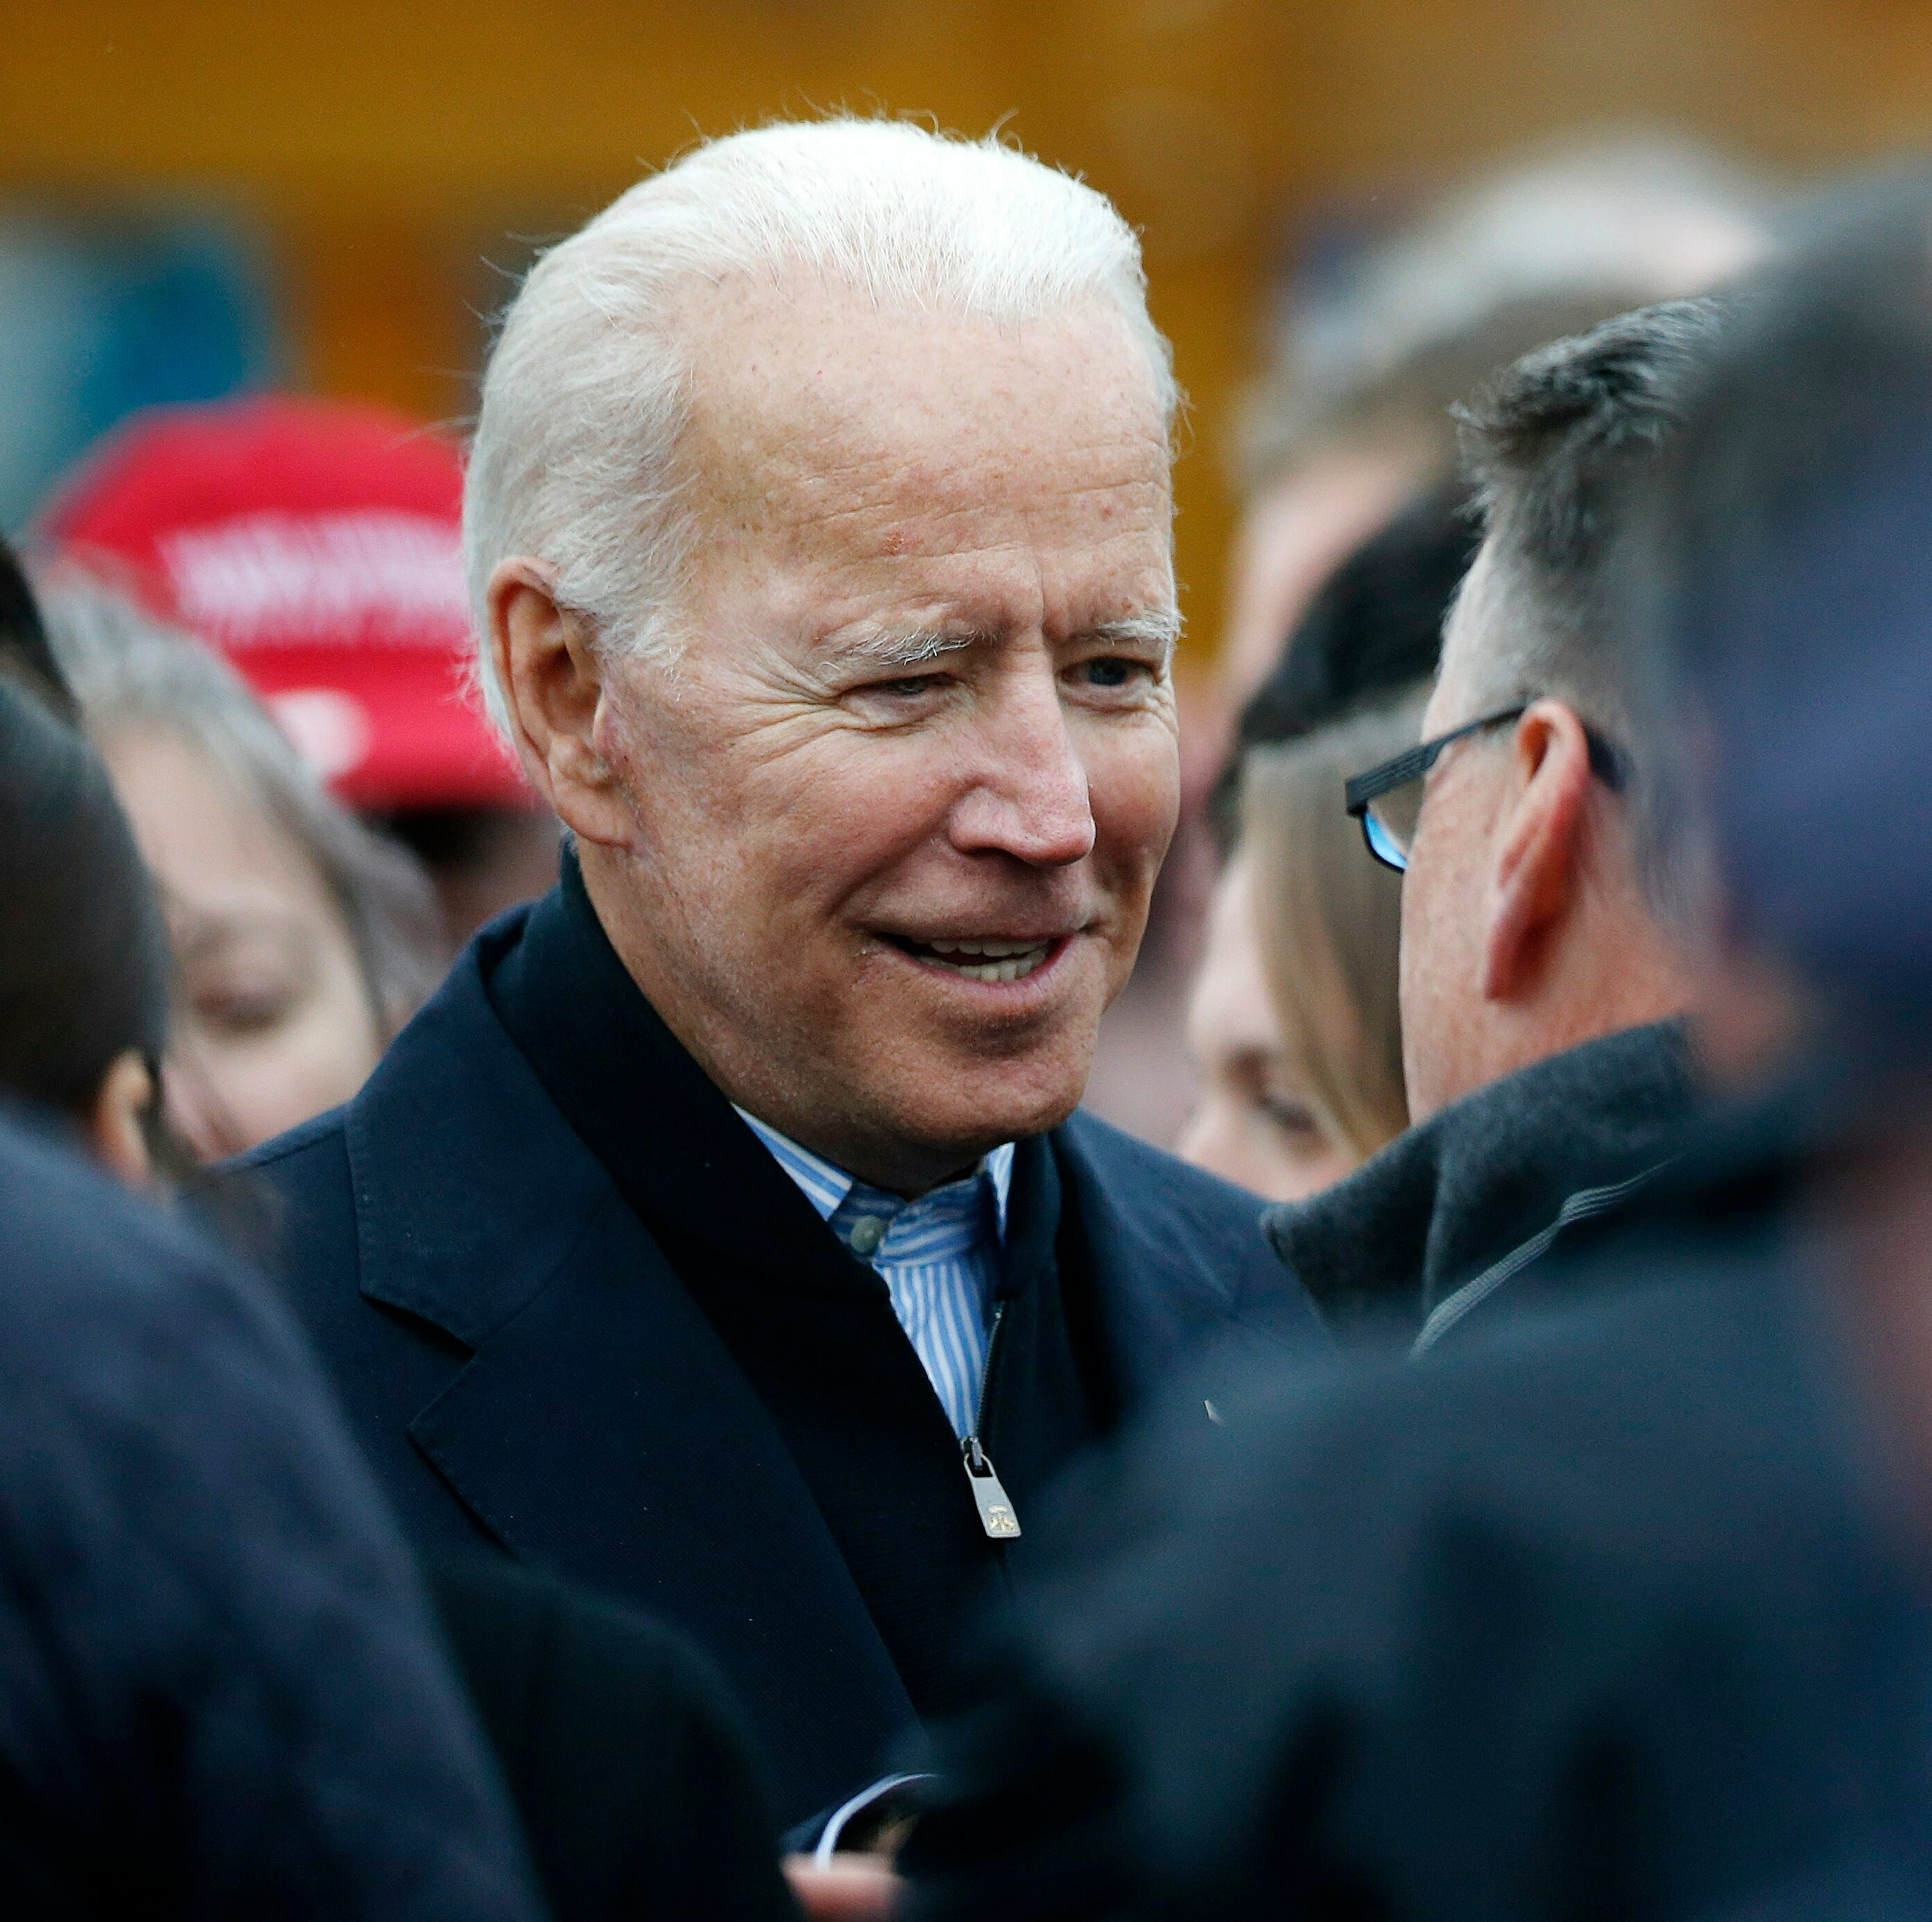 Joe Biden's complicated opposition to busing for school desegregation